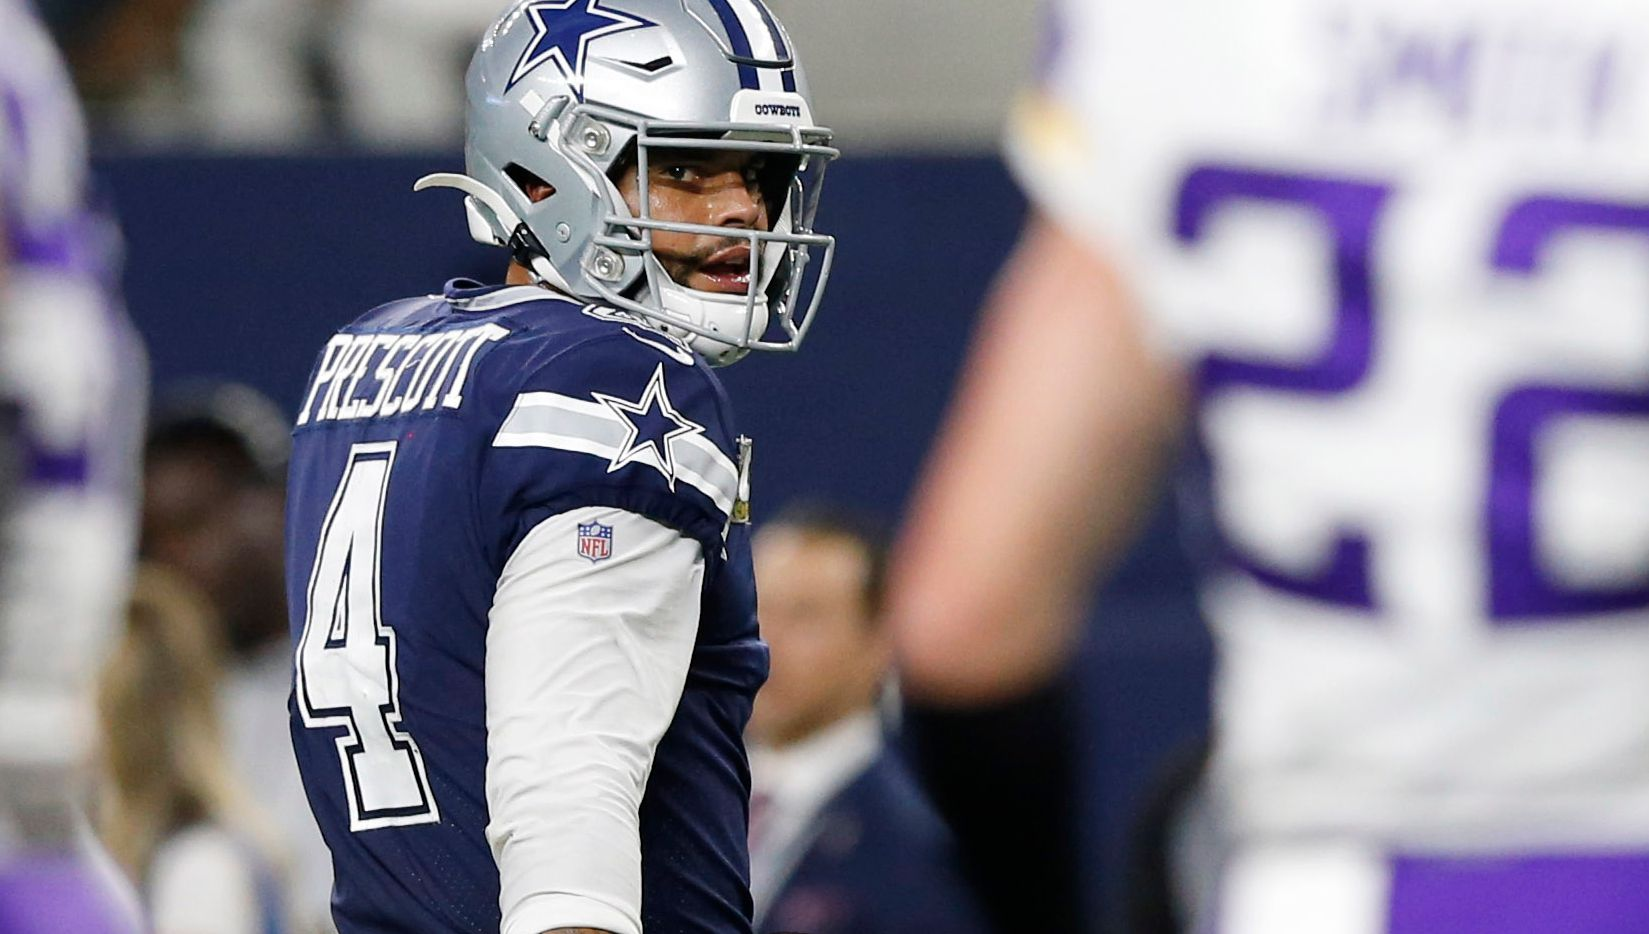 Dallas Cowboys quarterback Dak Prescott (4) and Minnesota Vikings outside linebacker Anthony Barr (55) share words after the Cowboys were stopped on third down during the second half of play at AT&T Stadium in Arlington, Texas on Sunday, November 10, 2019. The Minnesota Vikings defeated the Dallas Cowboys 28-24.